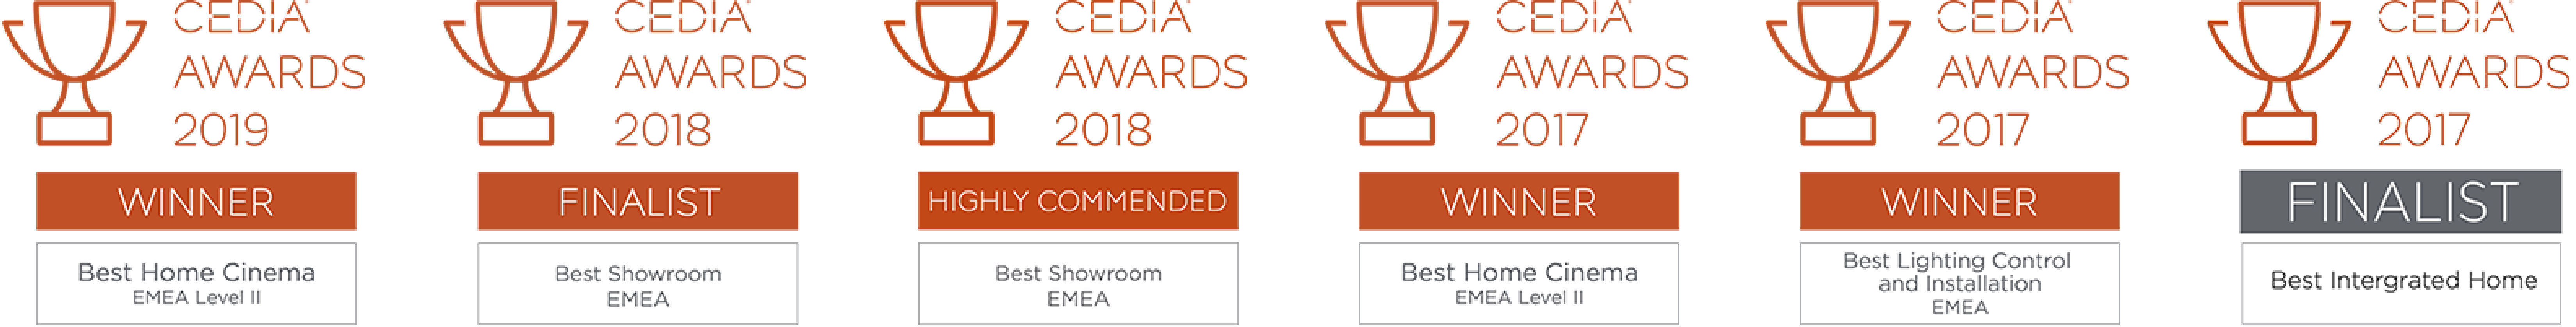 All CEDIA awards